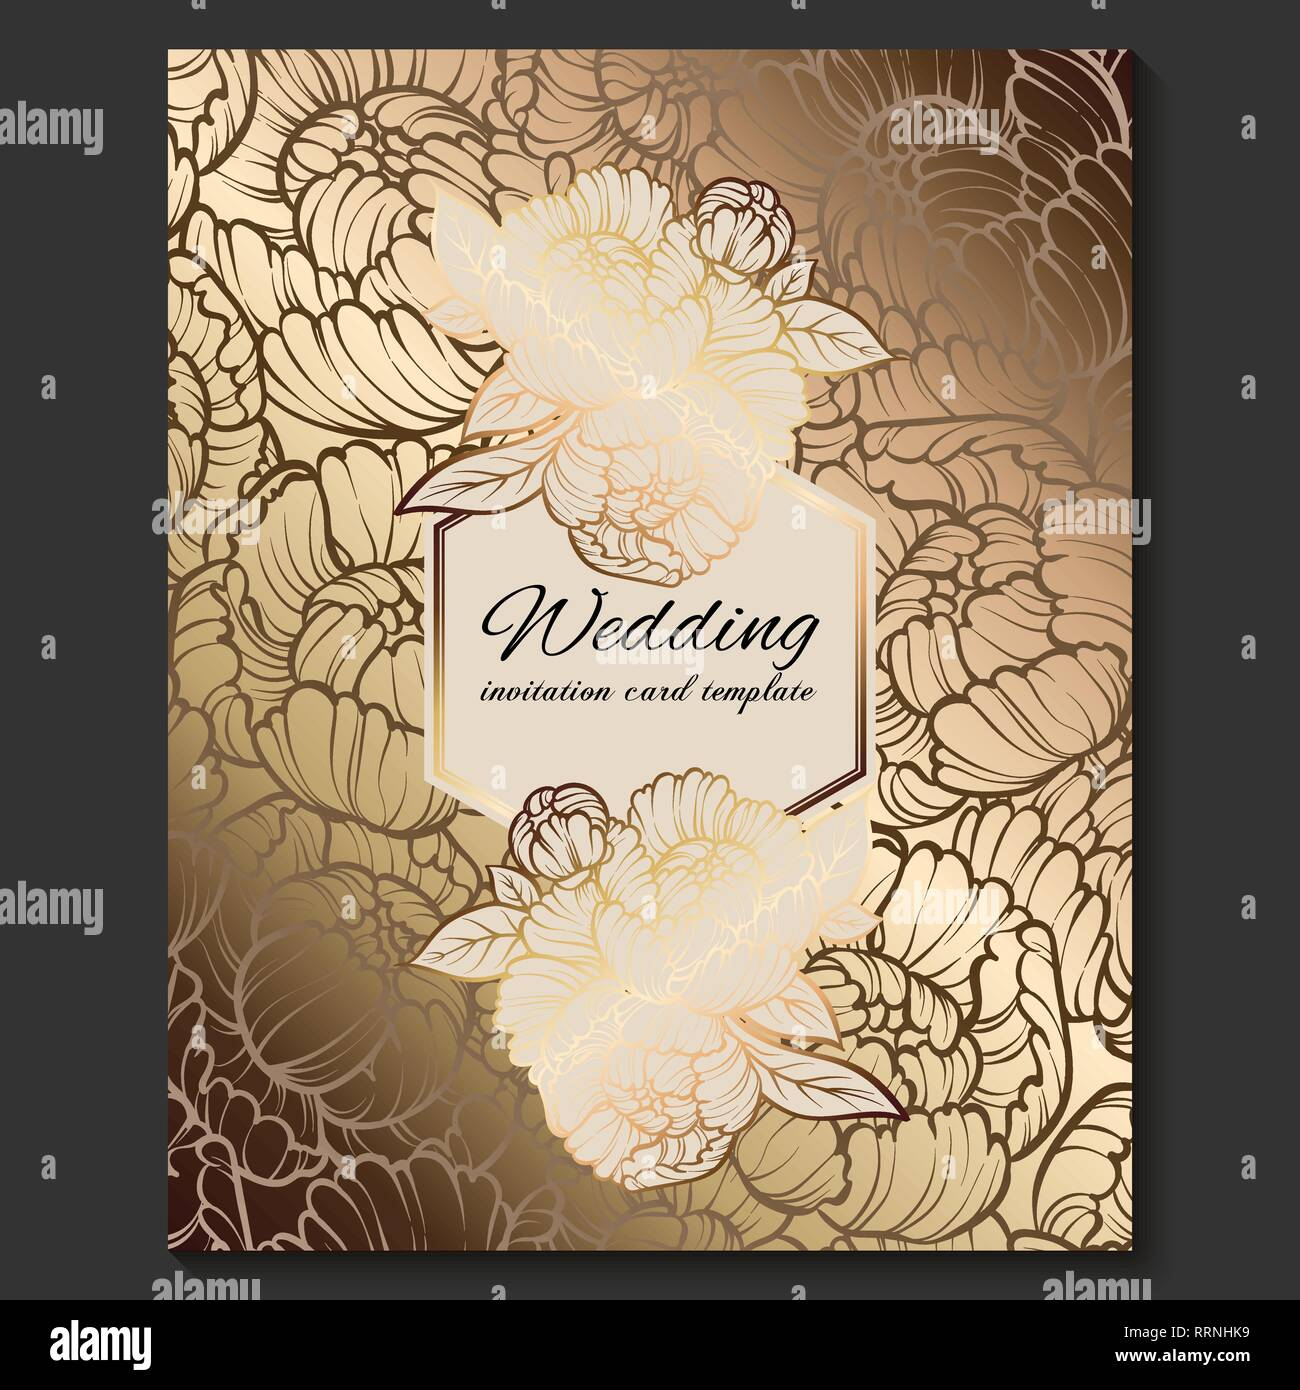 Antique Royal Luxury Wedding Invitation Gold On Beige Background With Frame And Place For Text Lacy Foliage Made Of Roses Or Peonies With Shiny Grad Stock Vector Image Art Alamy